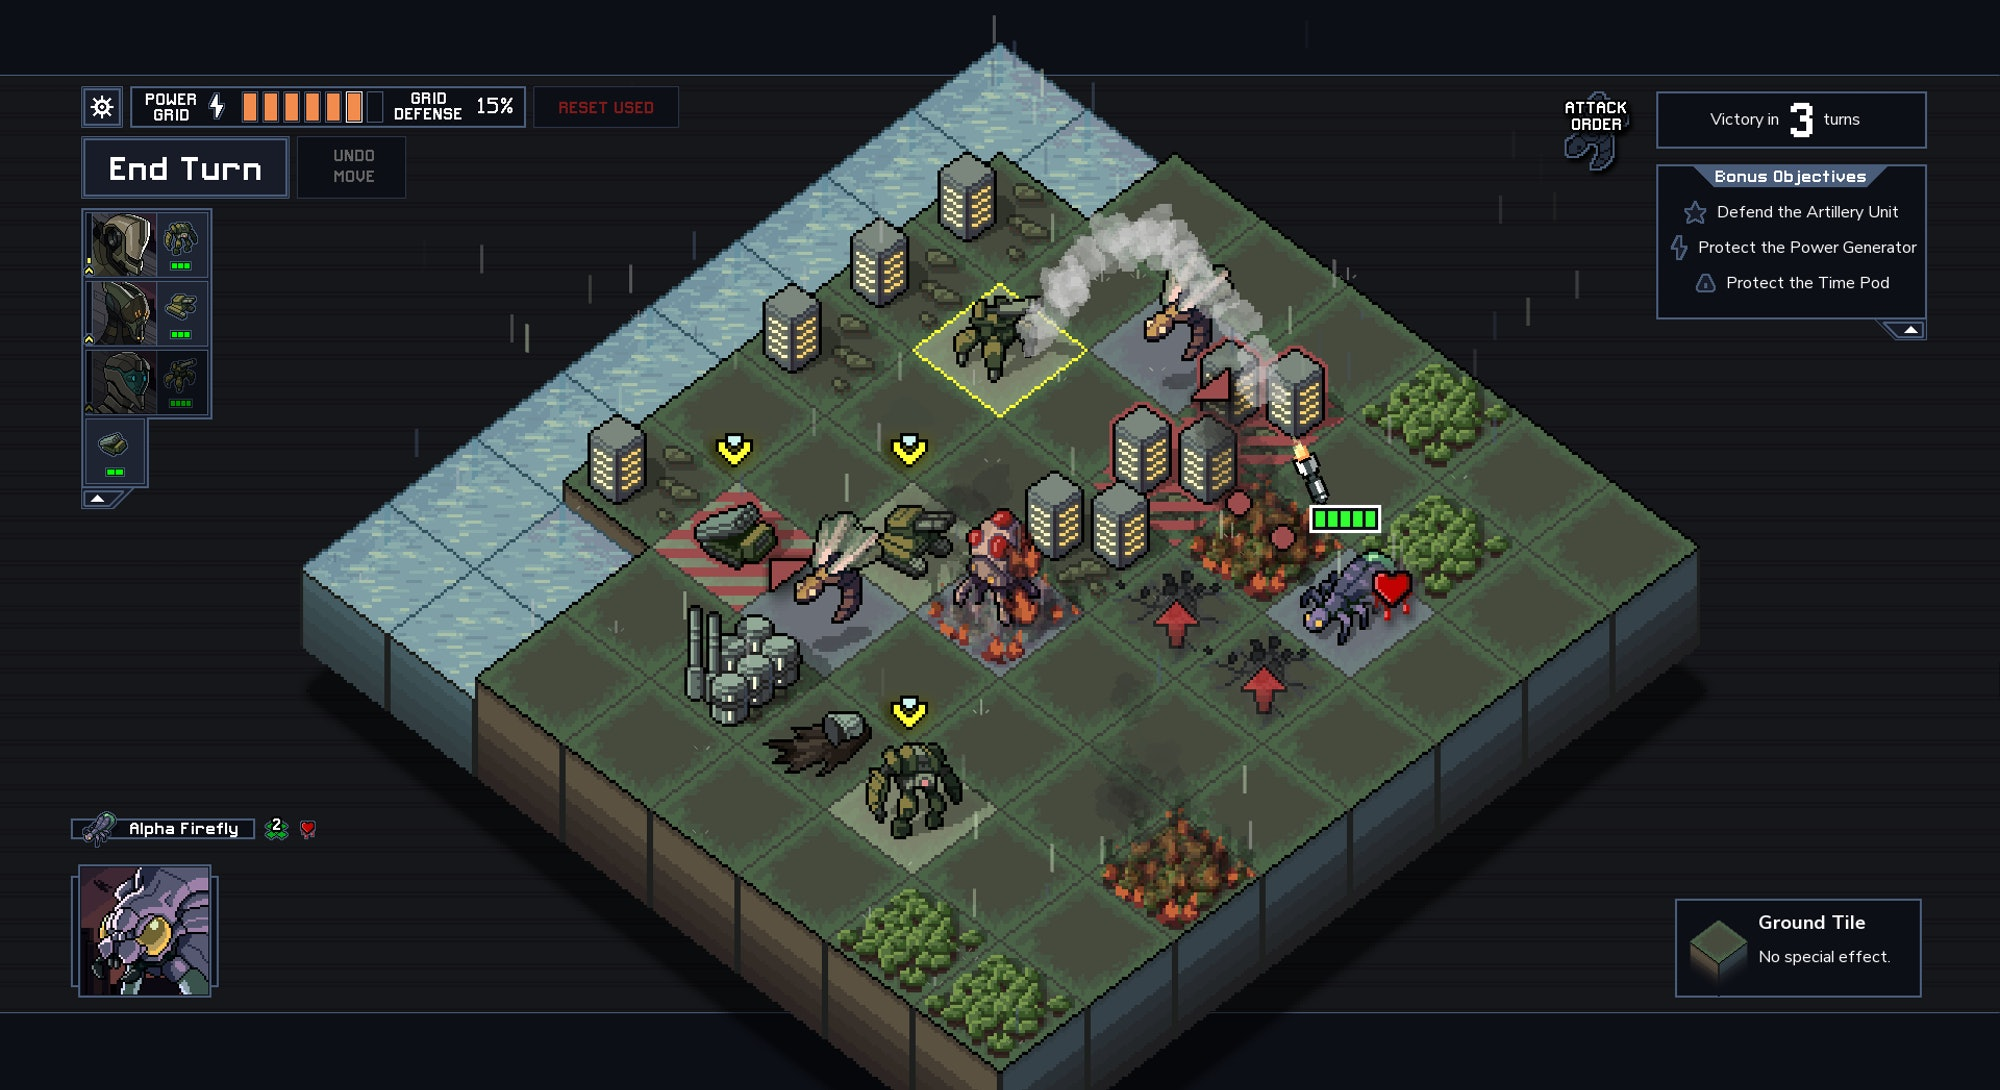 combat grid from into the breach